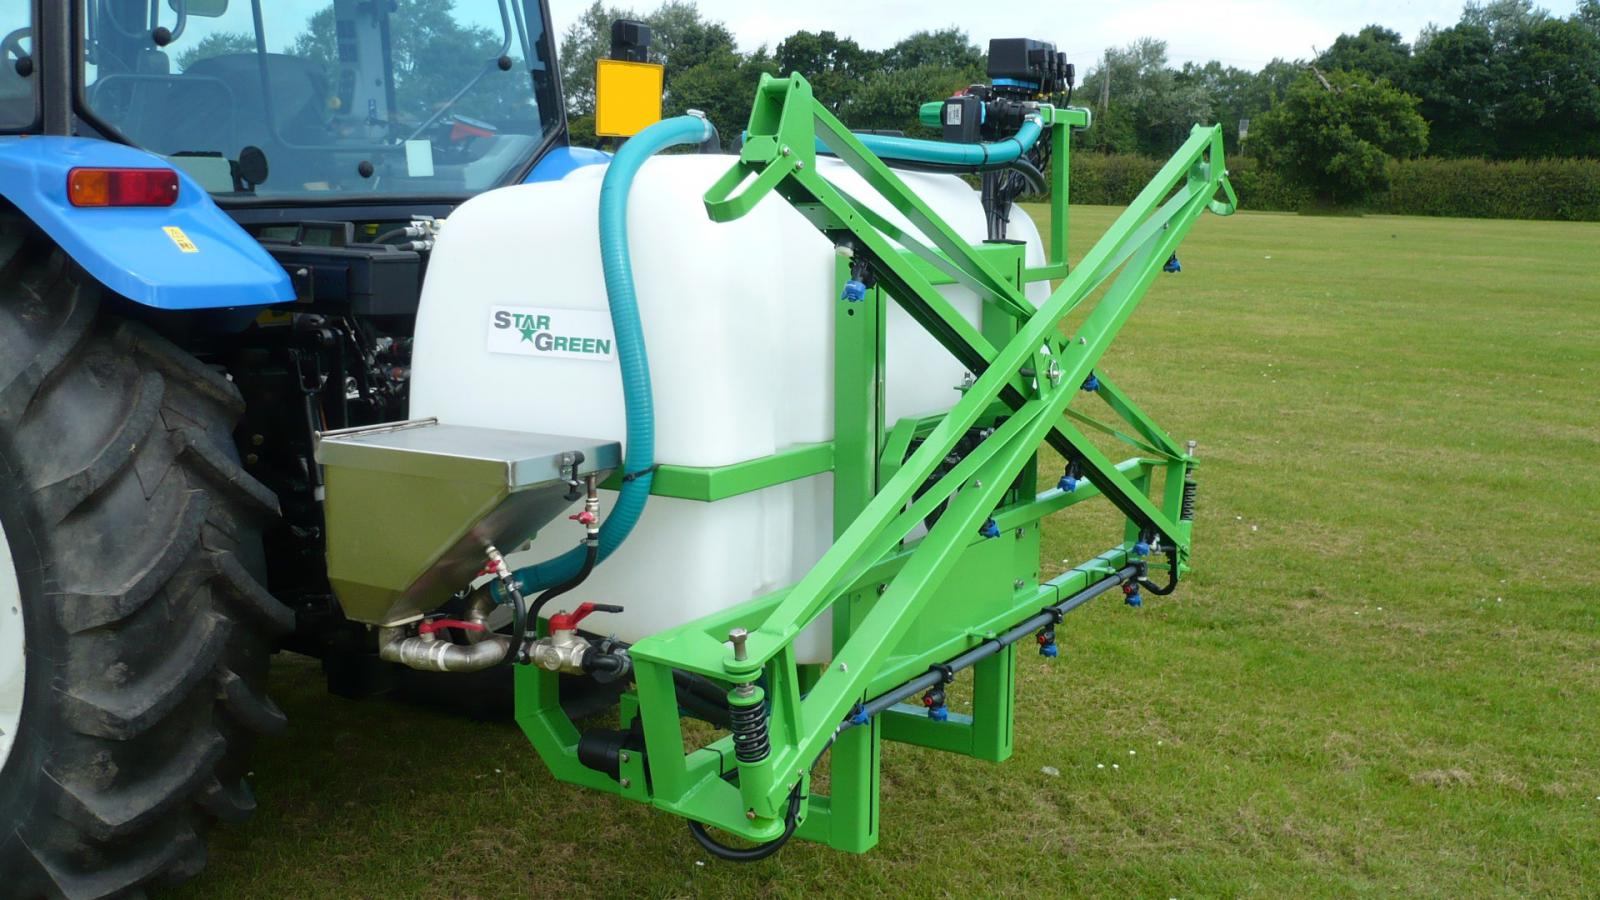 The AS600Pro and AS800Pro are the two largest sprayers in STARGREEN's tractor-mounted amenity sprayer range.